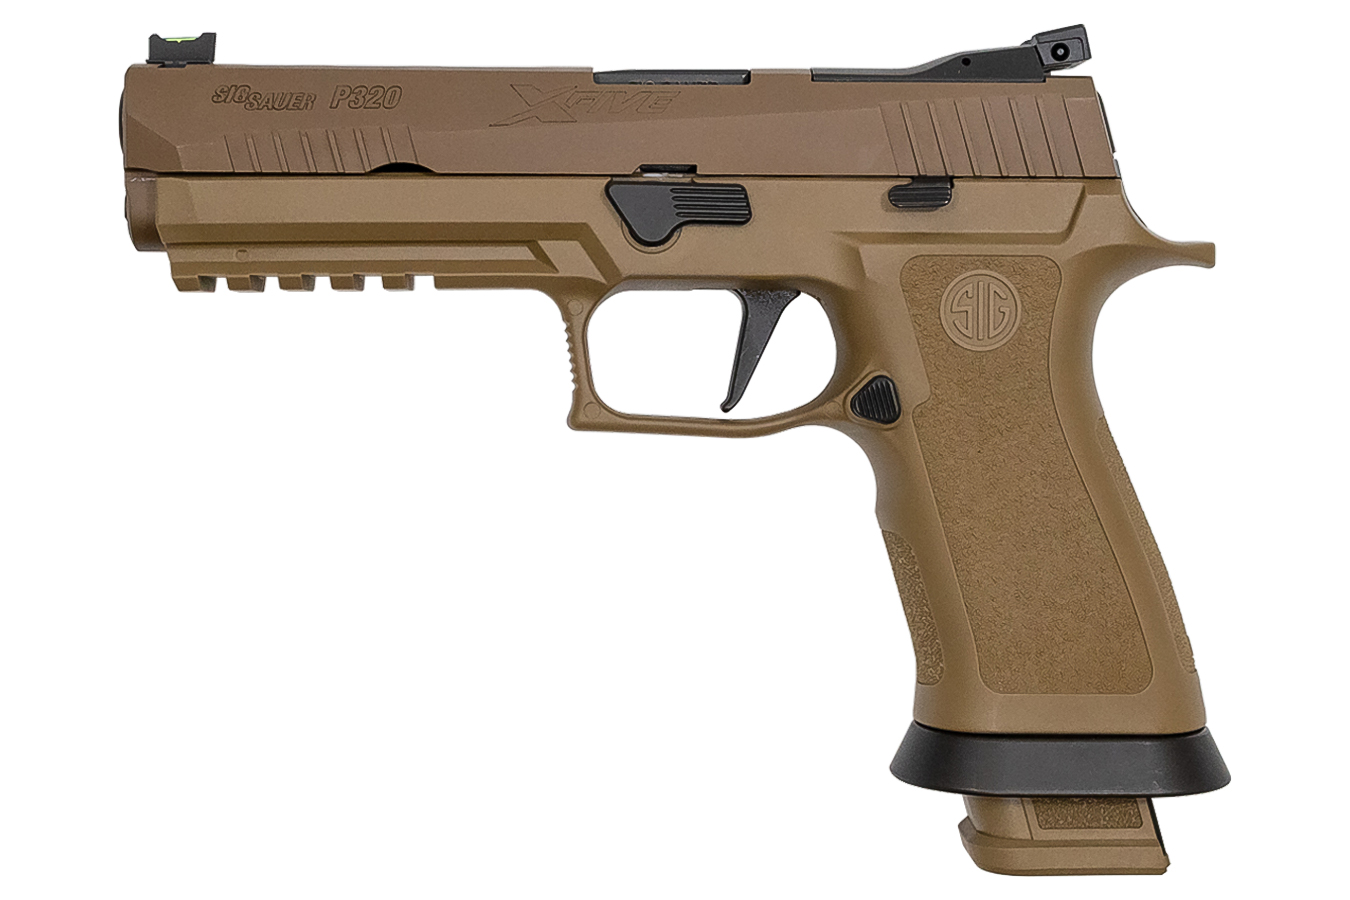 P320 X-FIVE COYOTE 9MM STRIKER-FIRED PISTOL